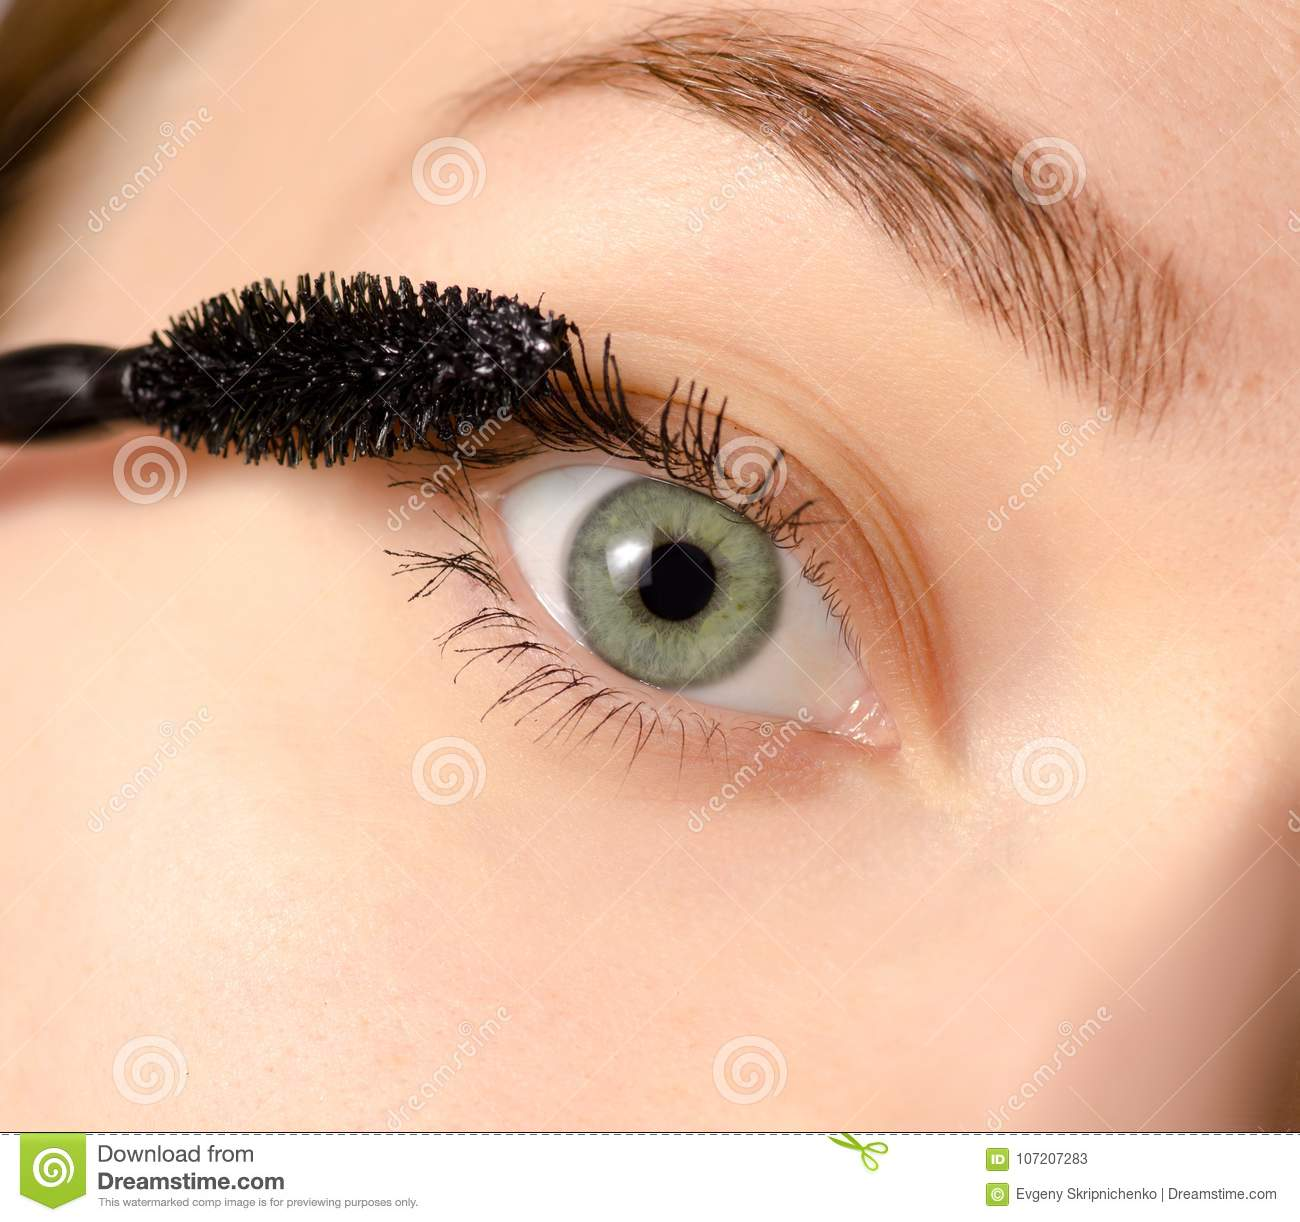 Female Eye Dye Eyelashes Mascara Stock Image Image Of Attractive